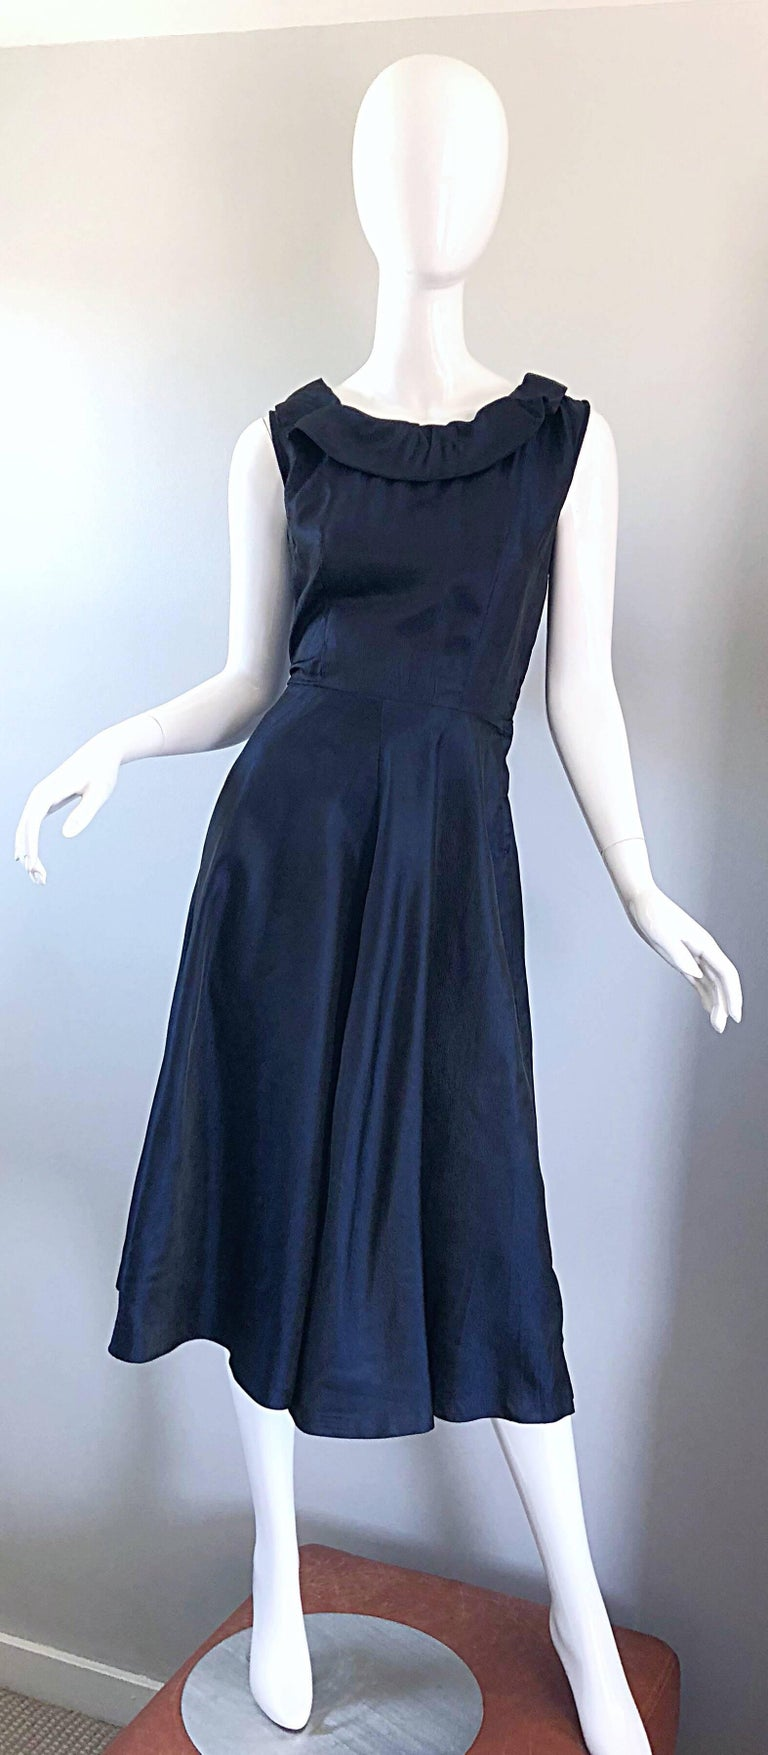 1950s Navy Midnight Blue Fit n ' Flare Vintage 50s Demi Couture Silk Dress For Sale 11